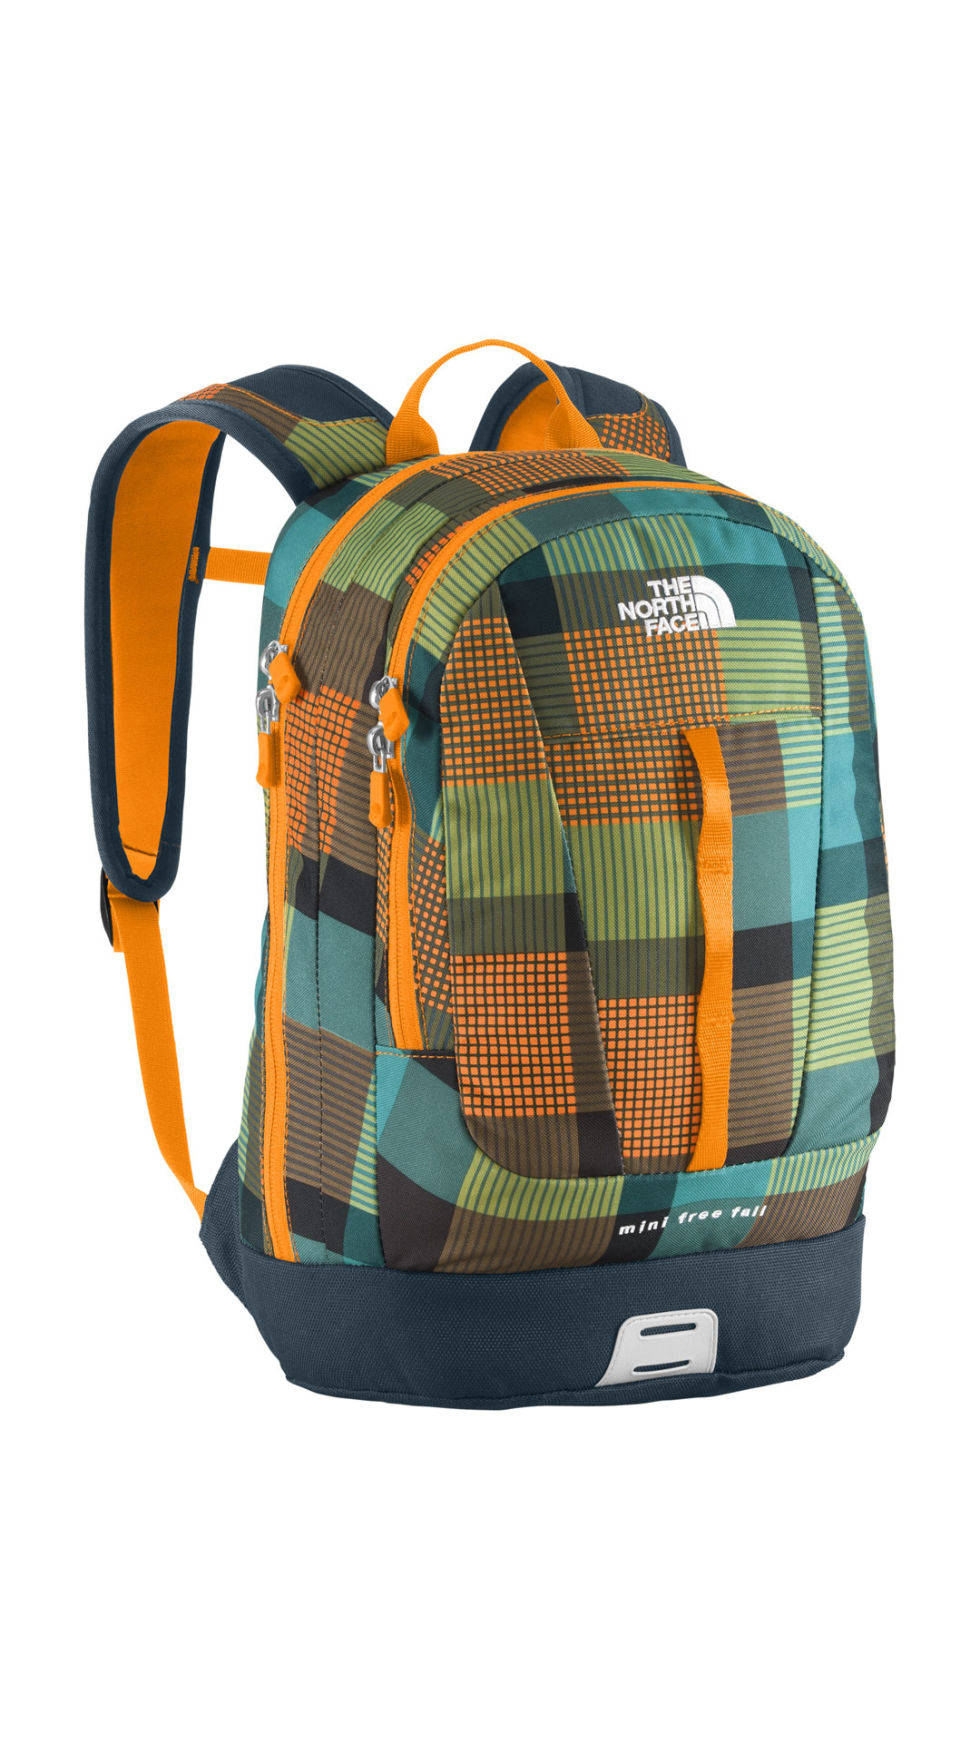 Best Back To School Backpacks 7dmiBtOE